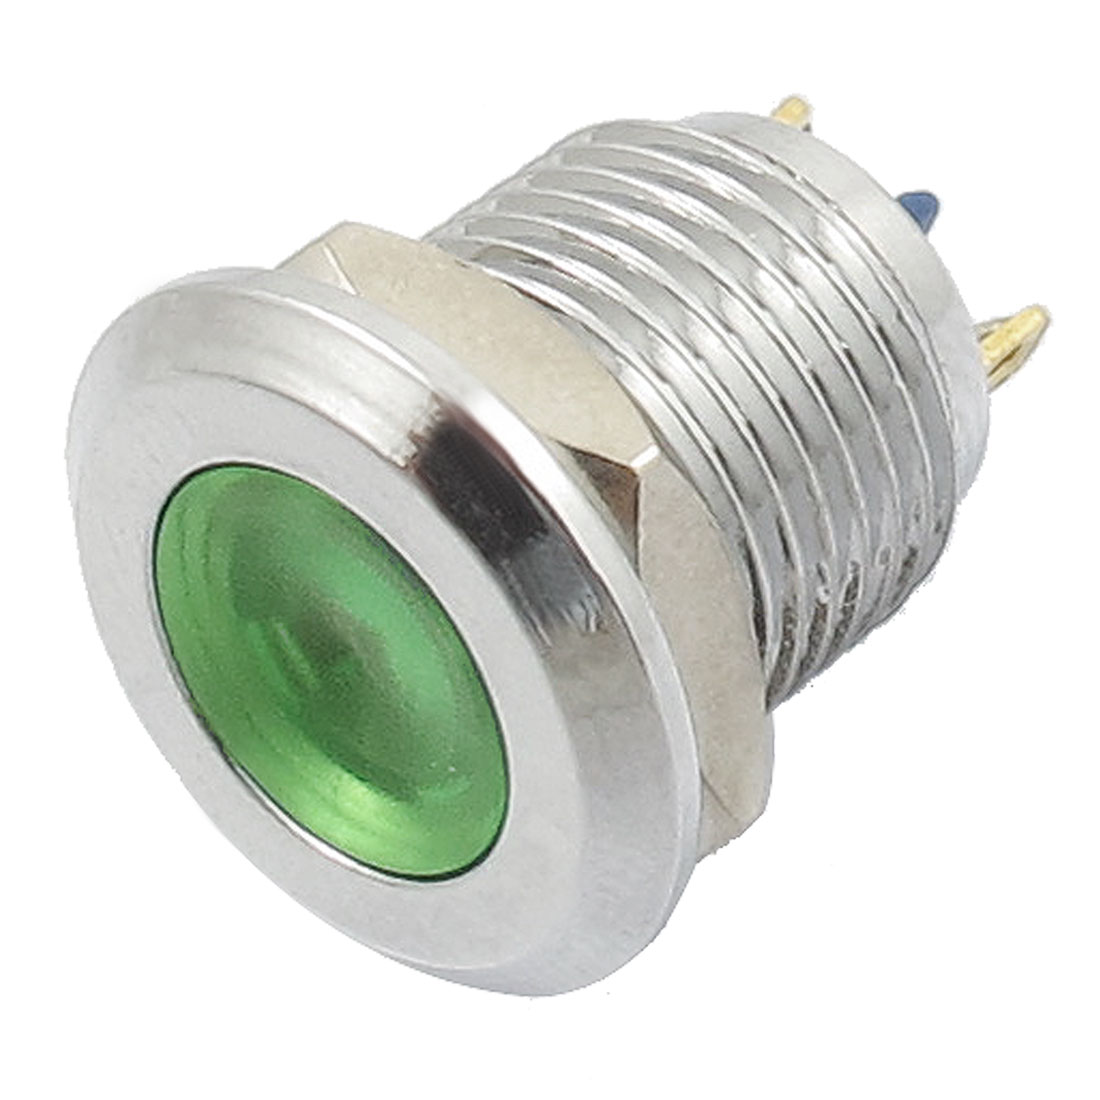 DC 12V Two Terminals Chrome-plated Metal Green Light Signal Indicator Pilot Lamp